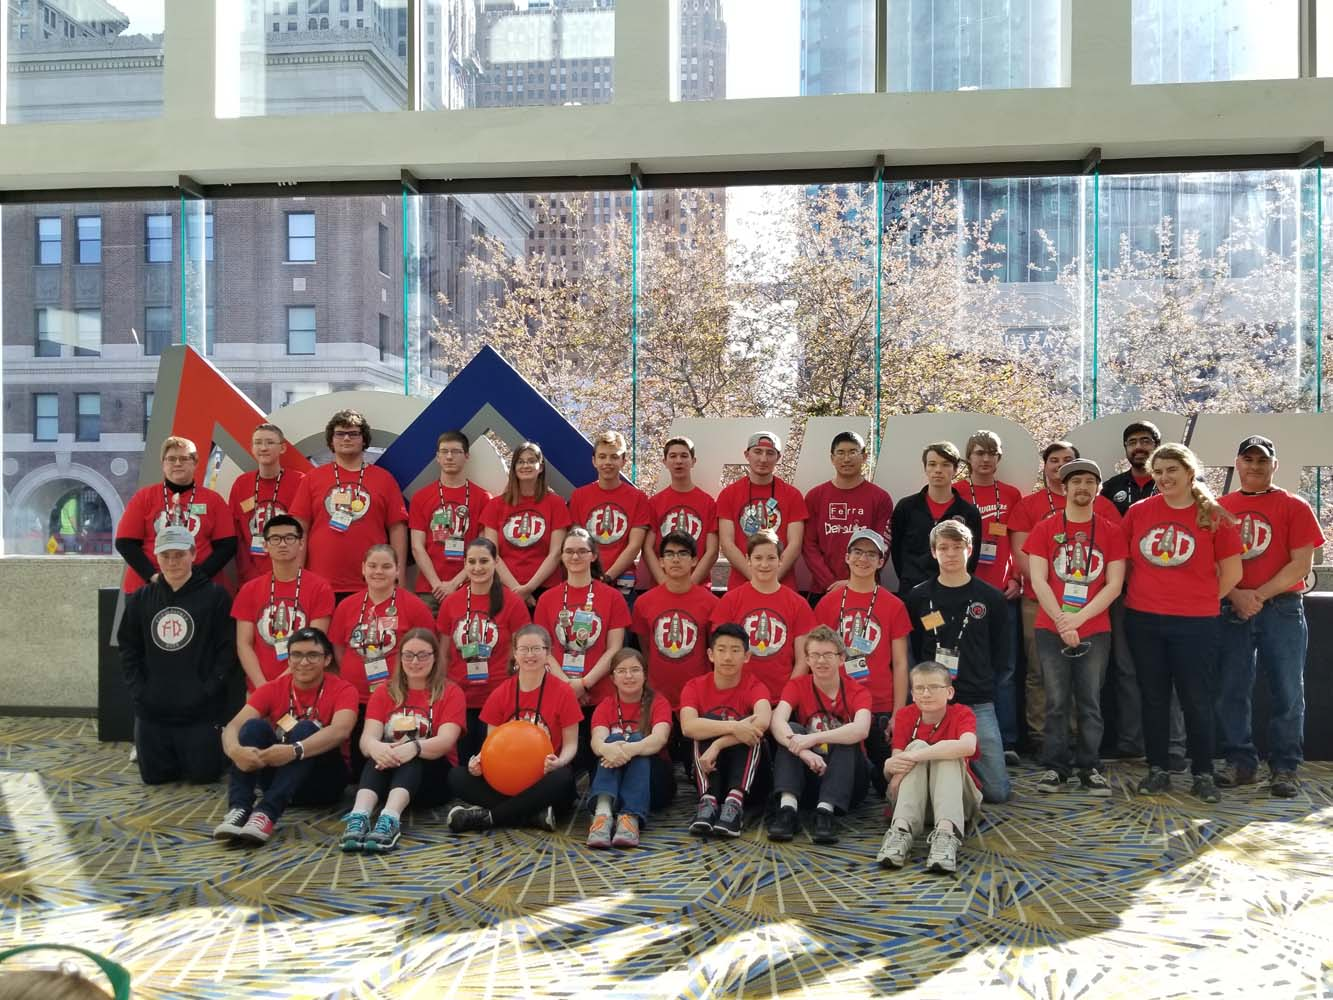 Team members and mentors pose for a photo in the lobby of the Cobo Center